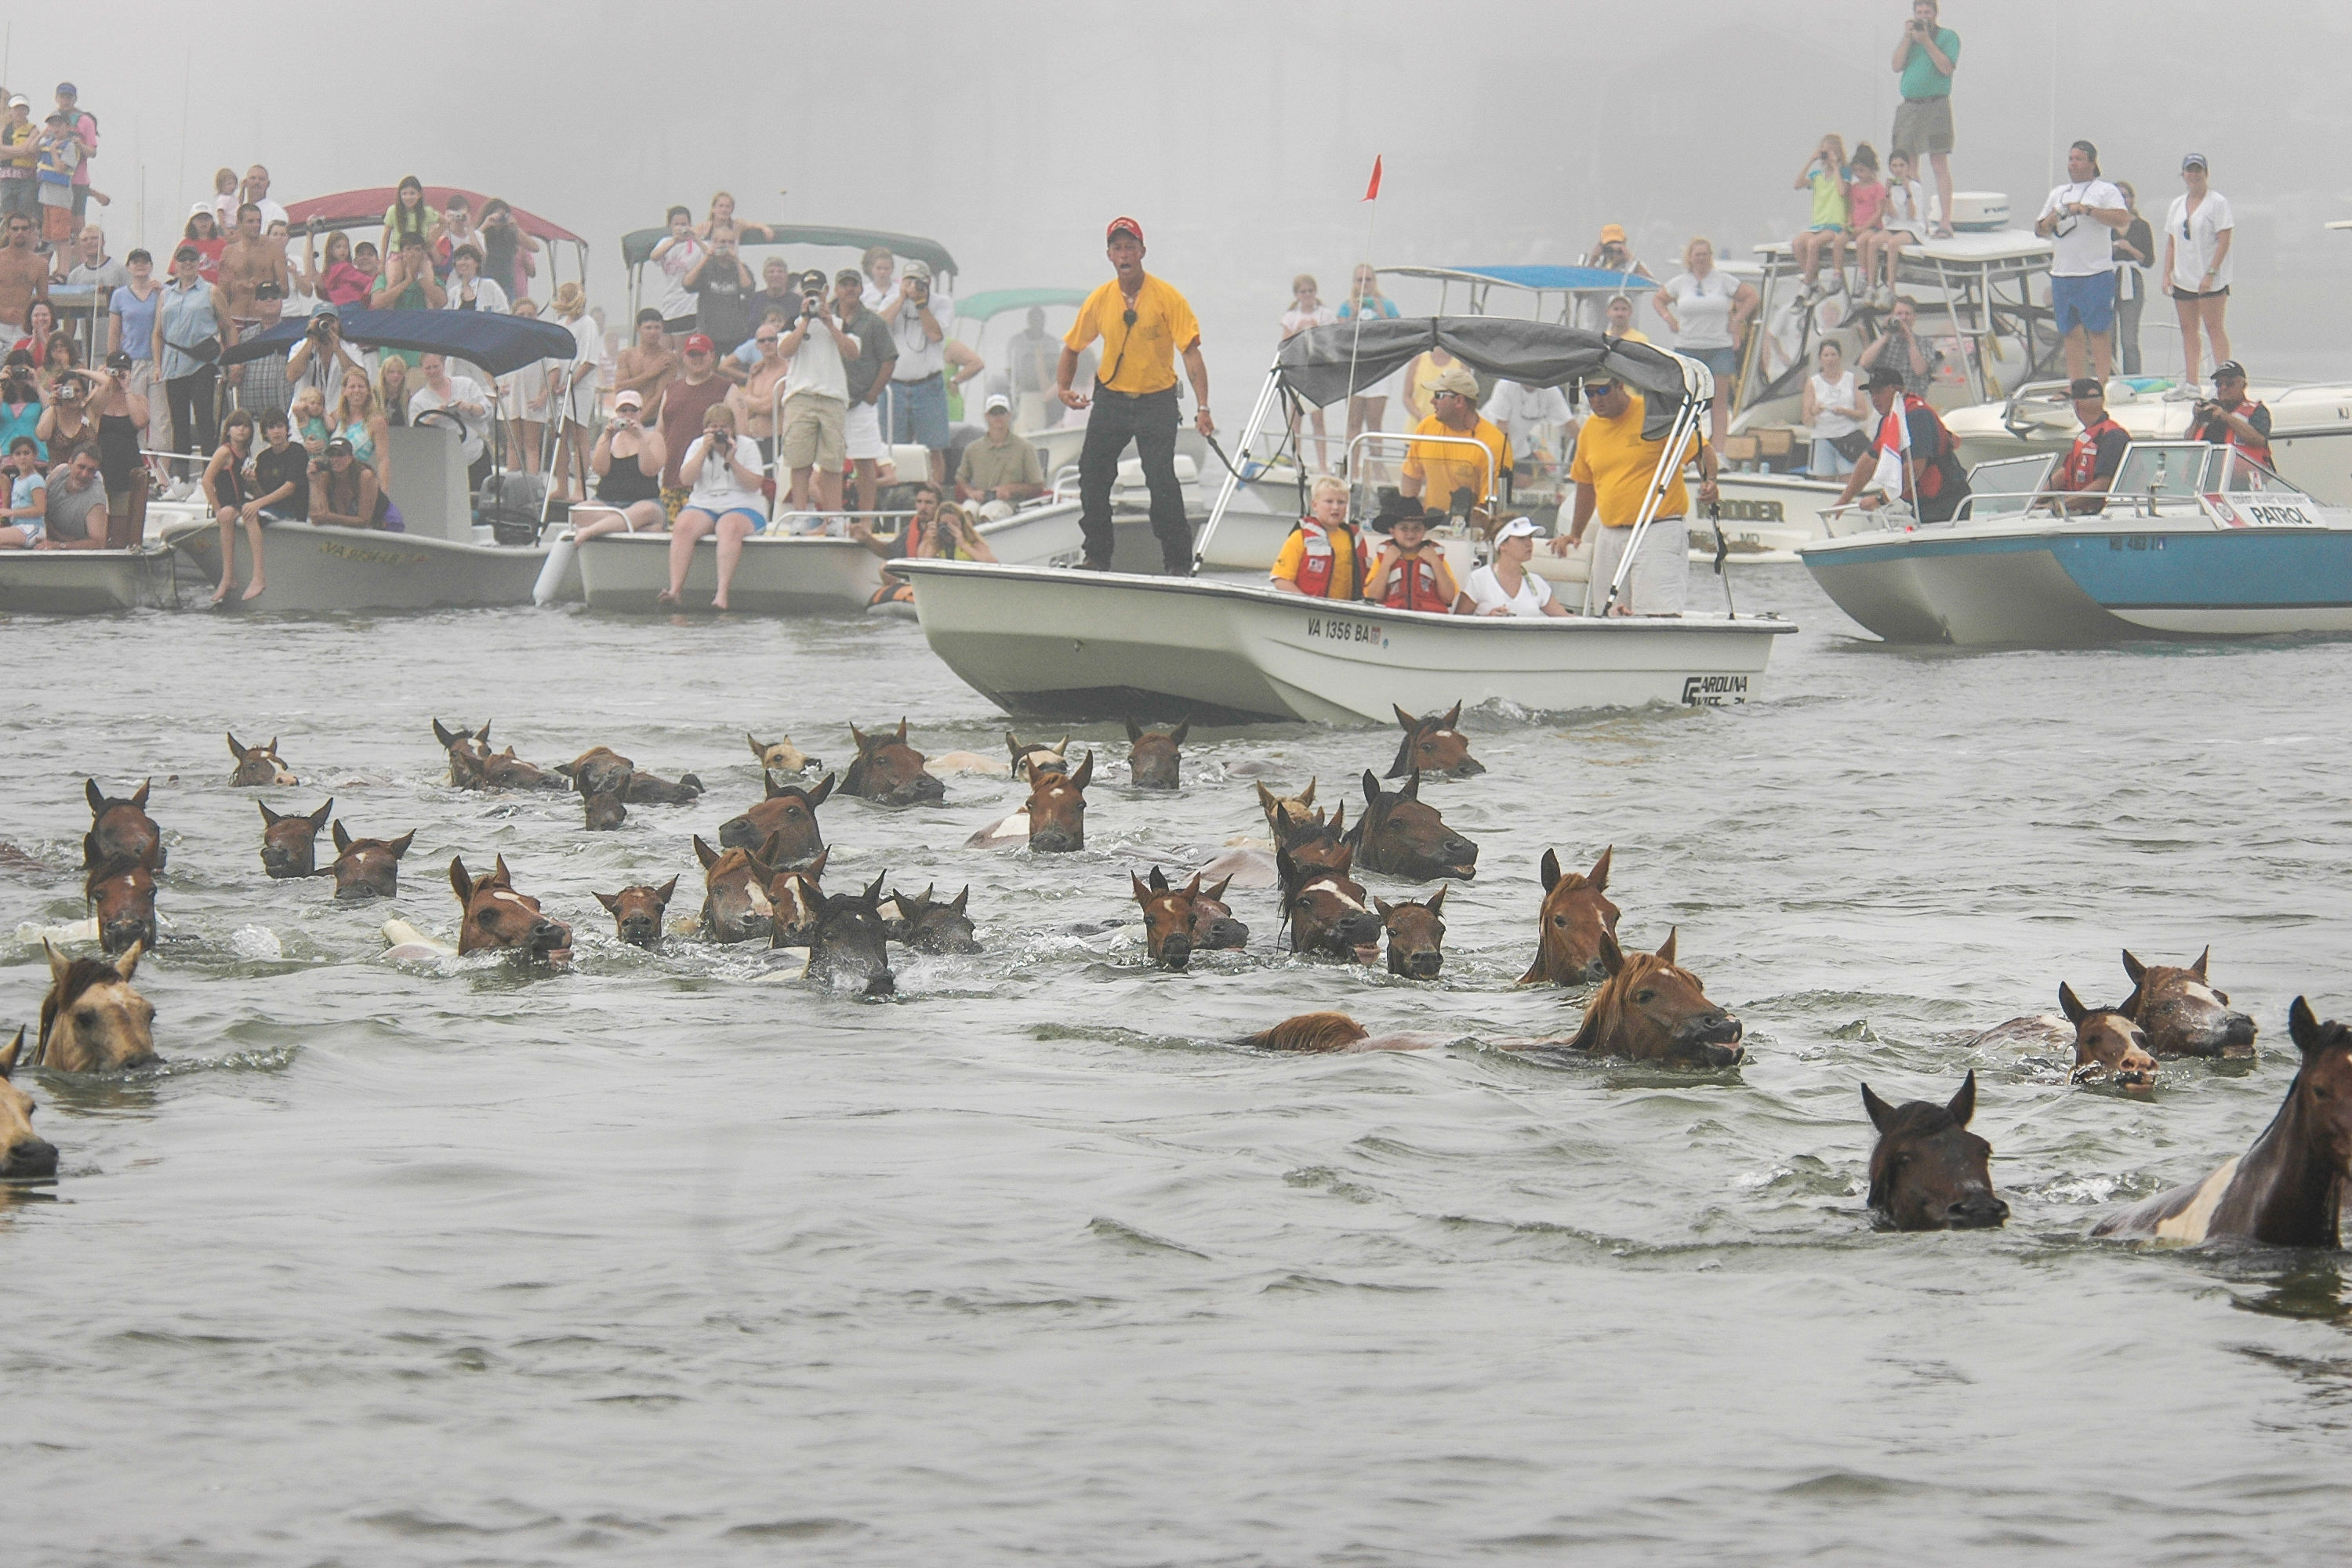 Watch Wild Ponies Swim at Chincoteague in Annual Virginia Tradition